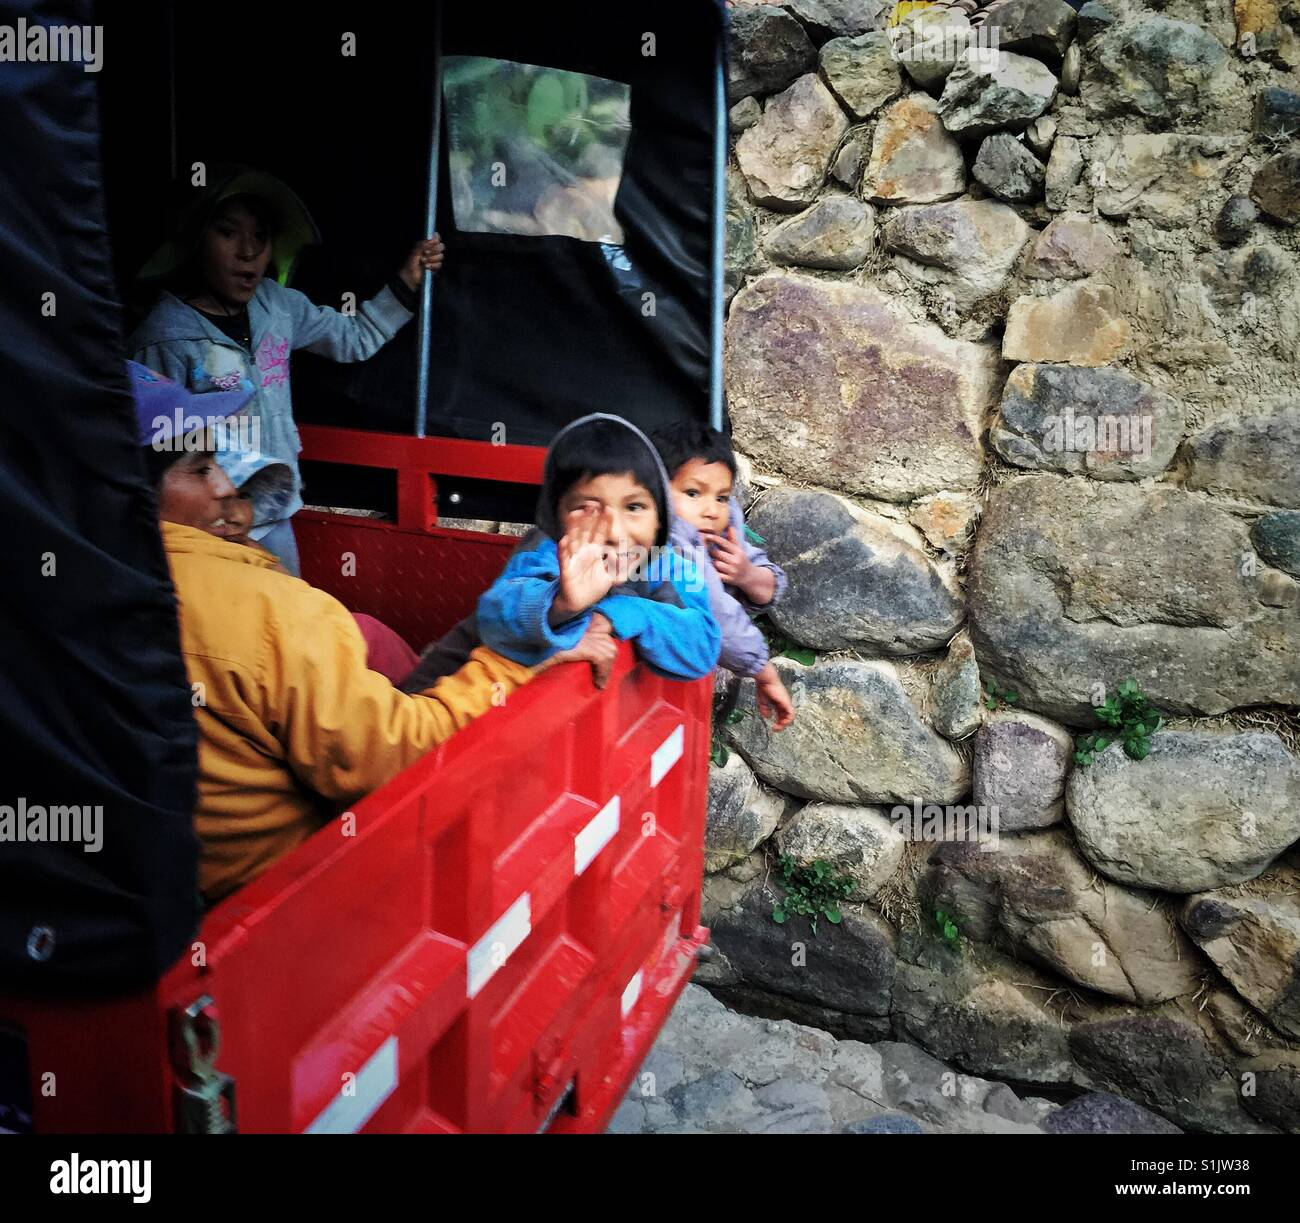 Red pickup truck full of children on a narrow street of Olantaytambo in Cusco region in Peru - Stock Image